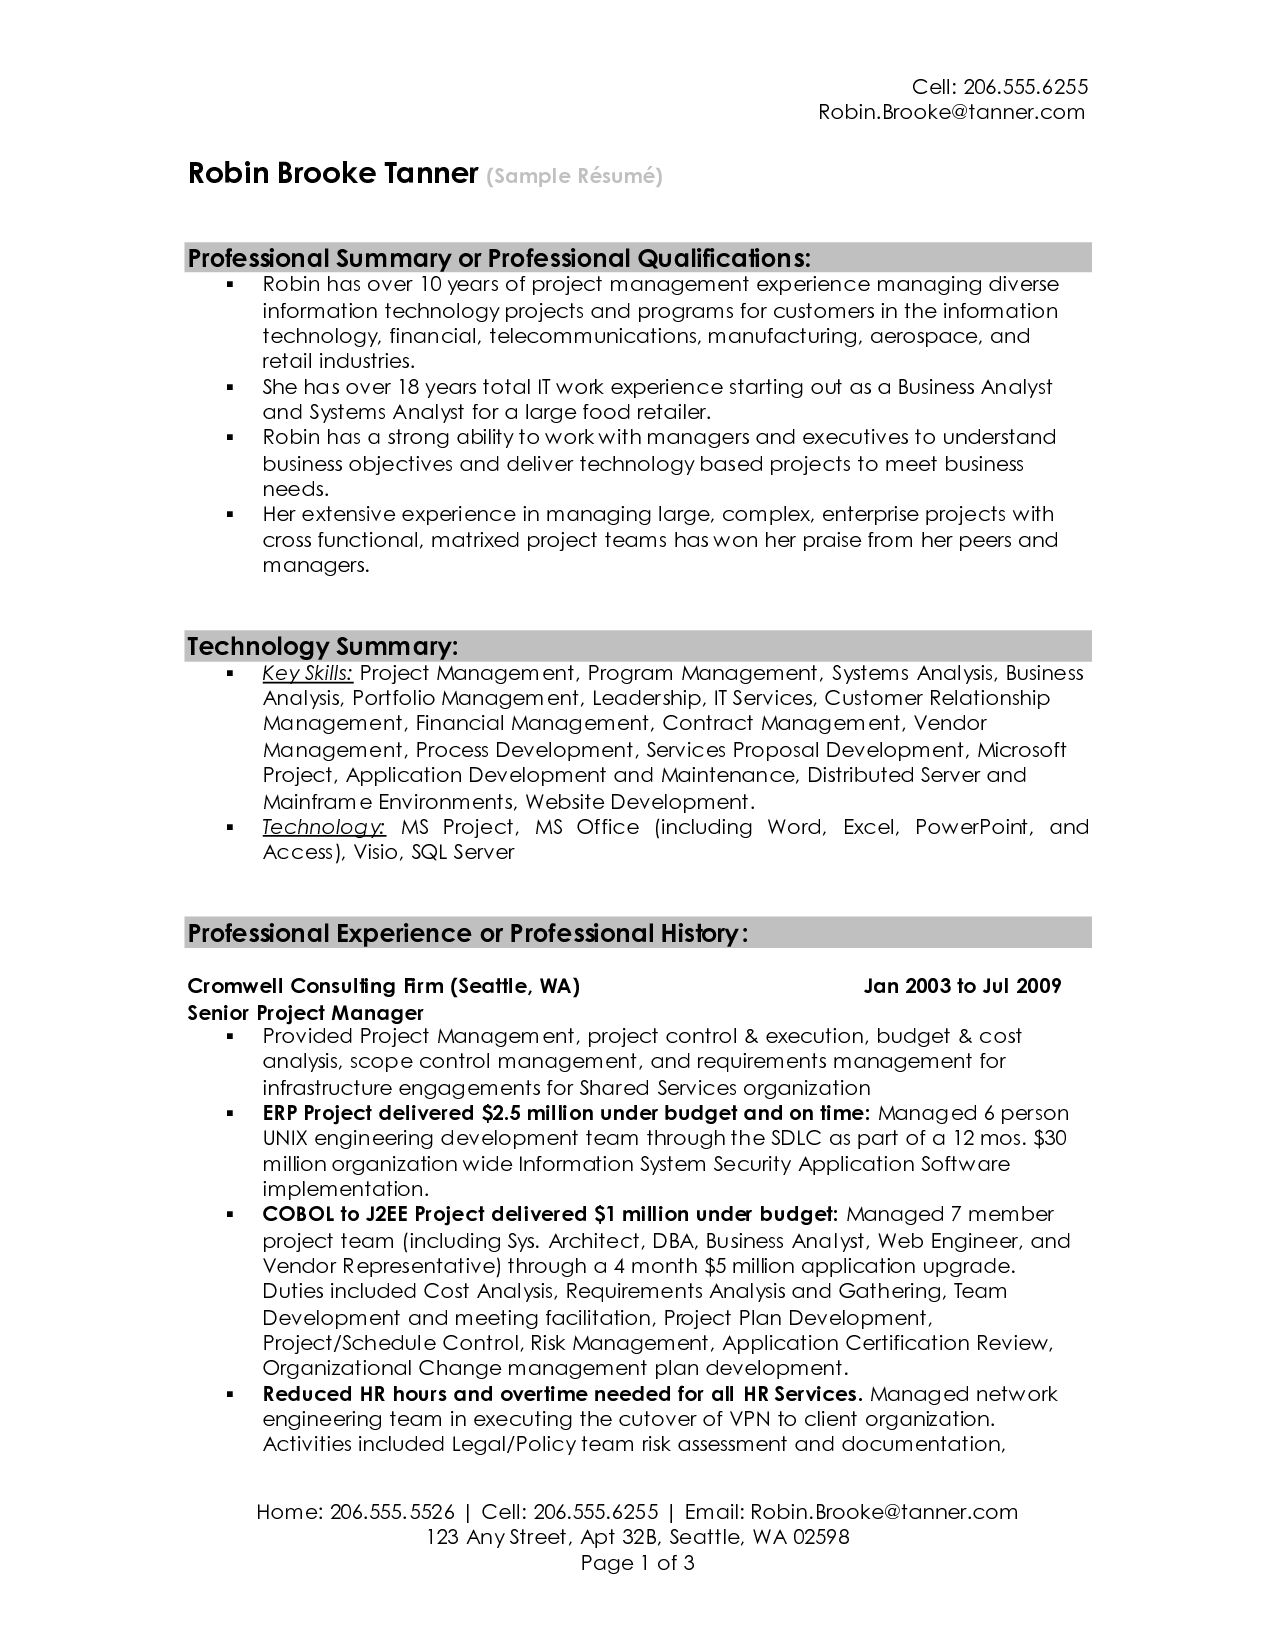 Summary Statement Resume Examples Professional Summary Resume Examples Professional Resume Summary